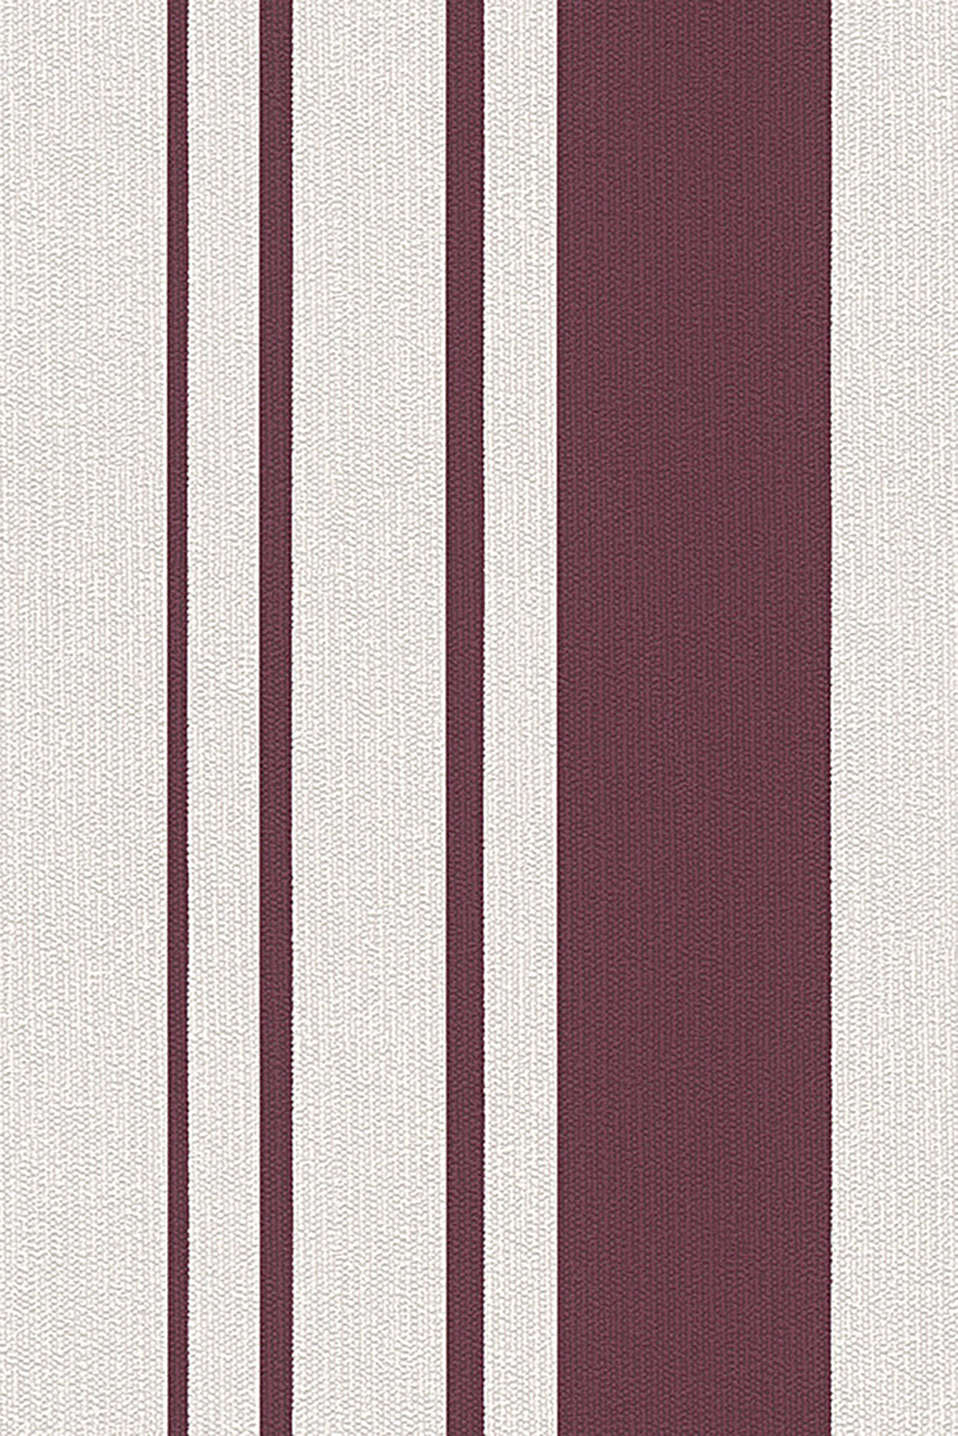 Esprit - Non-woven striped wallpaper